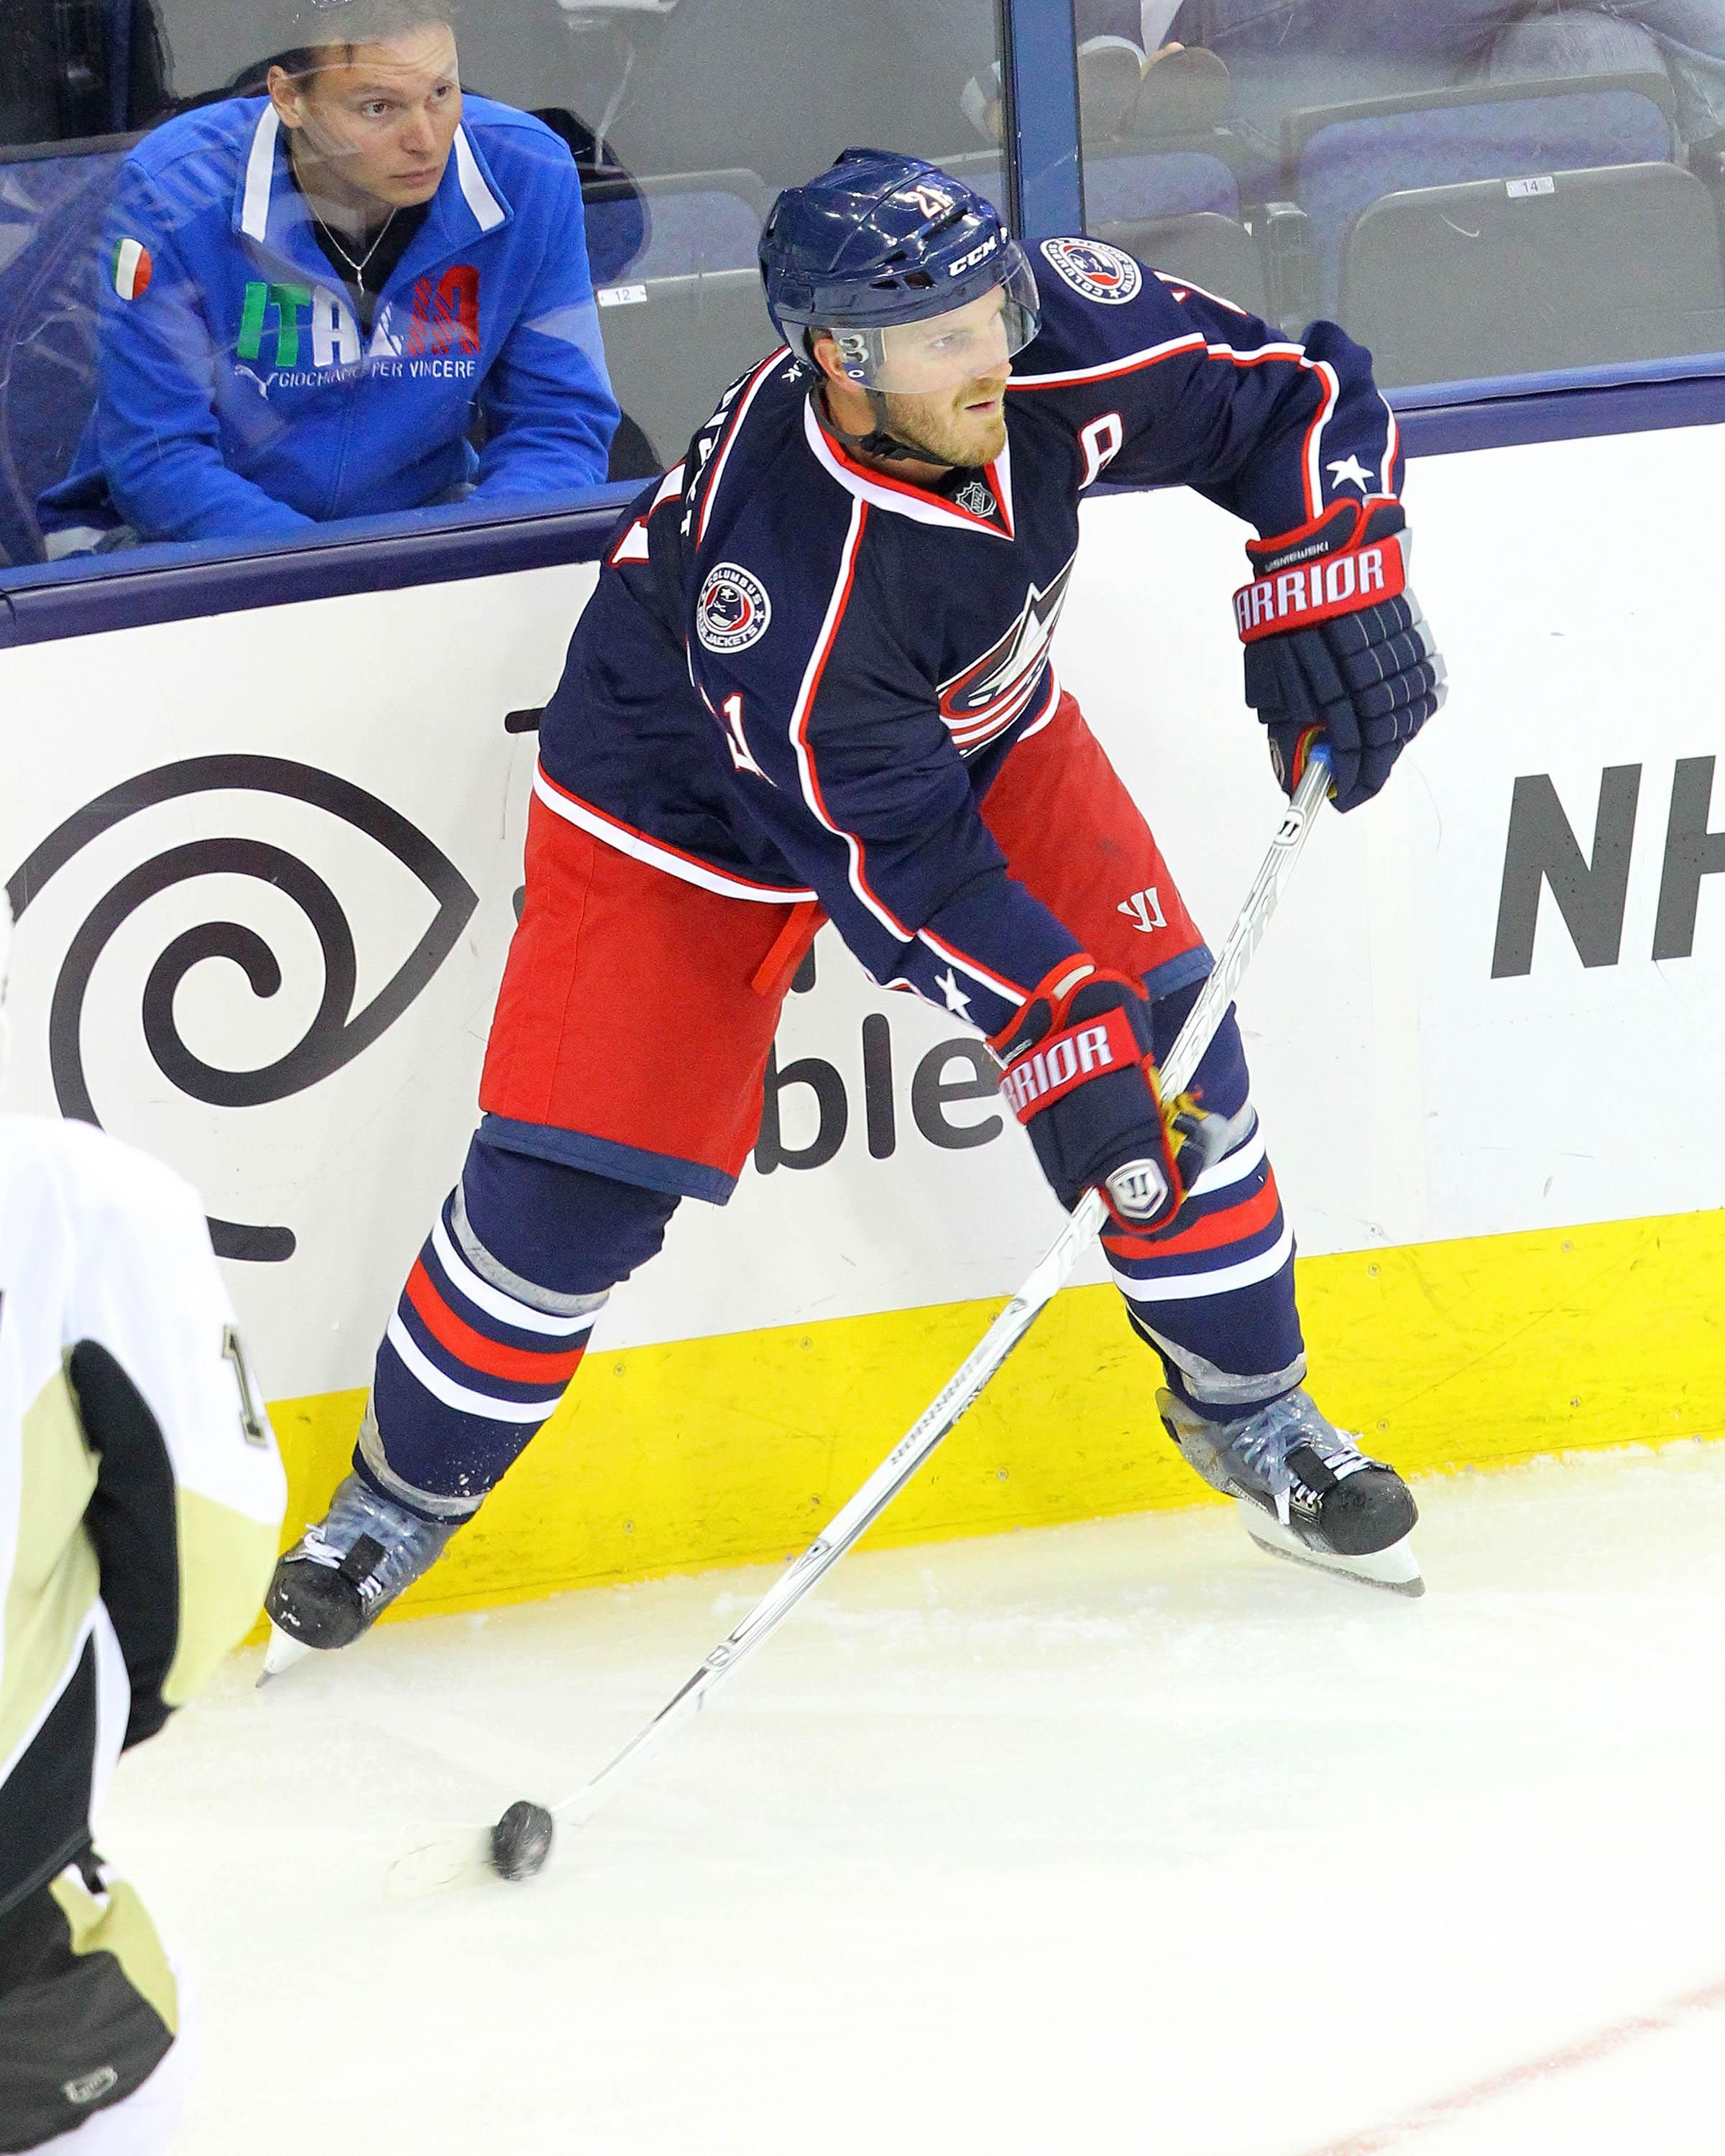 CrowdCam Hot Shot: Columbus Blue Jackets defenseman James Wisniewski clears the puck during the 3rd period of the game against the Pittsburgh Penguins at Nationwide Arena. Photo by Rob Leifheit